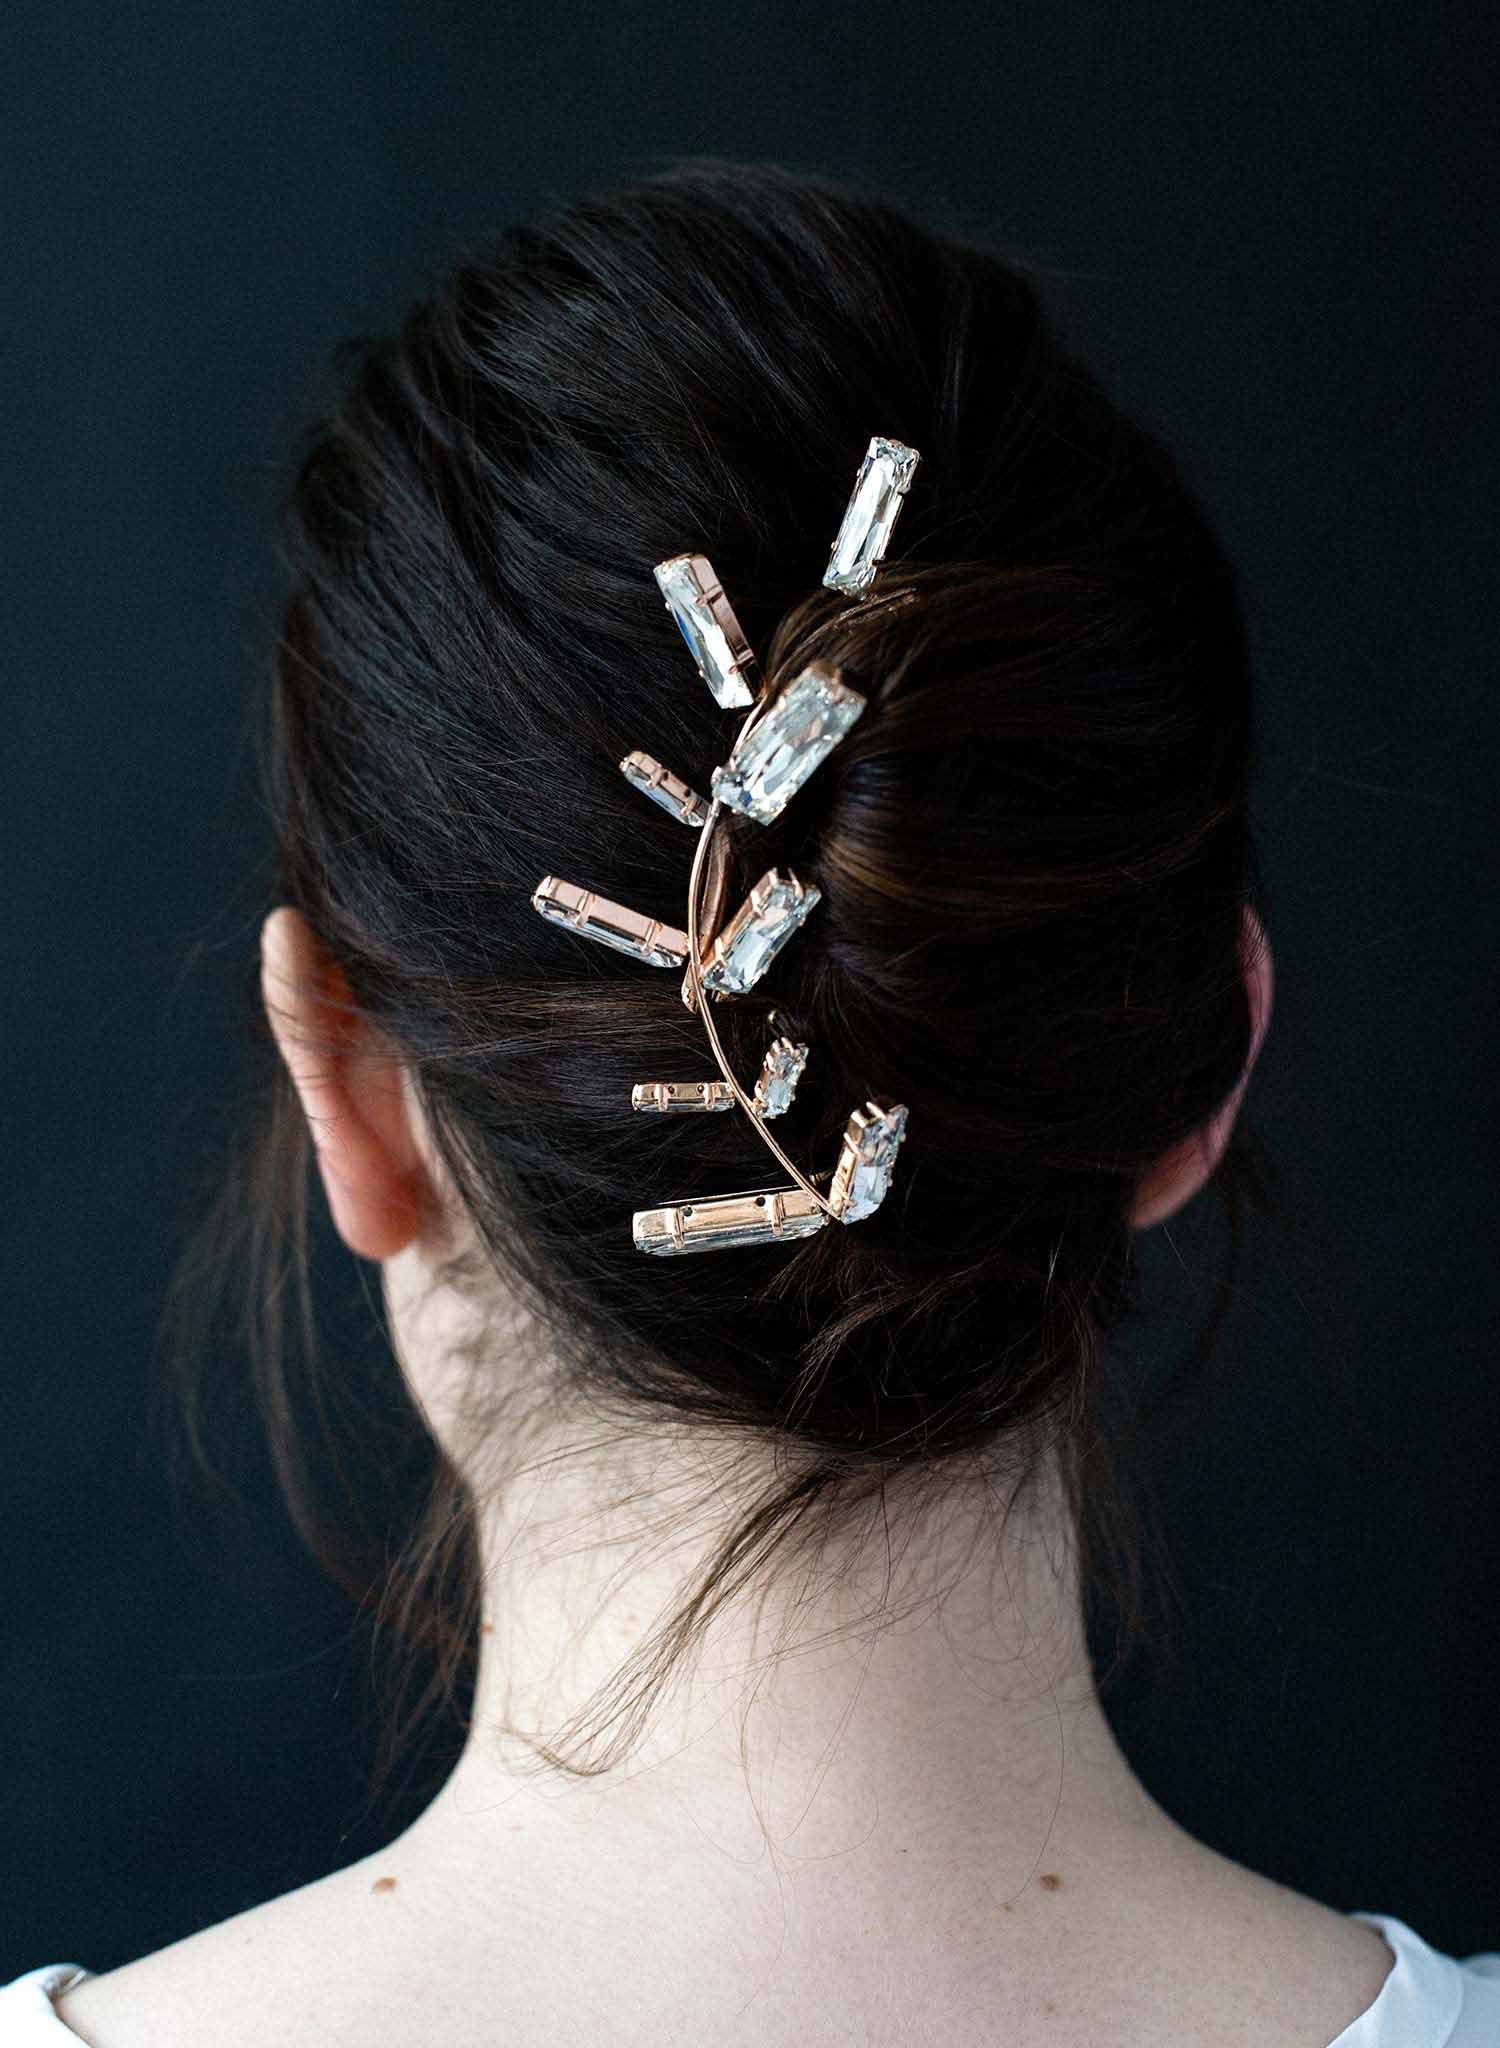 Ticker tape parade crystal hair comb - Style #9009